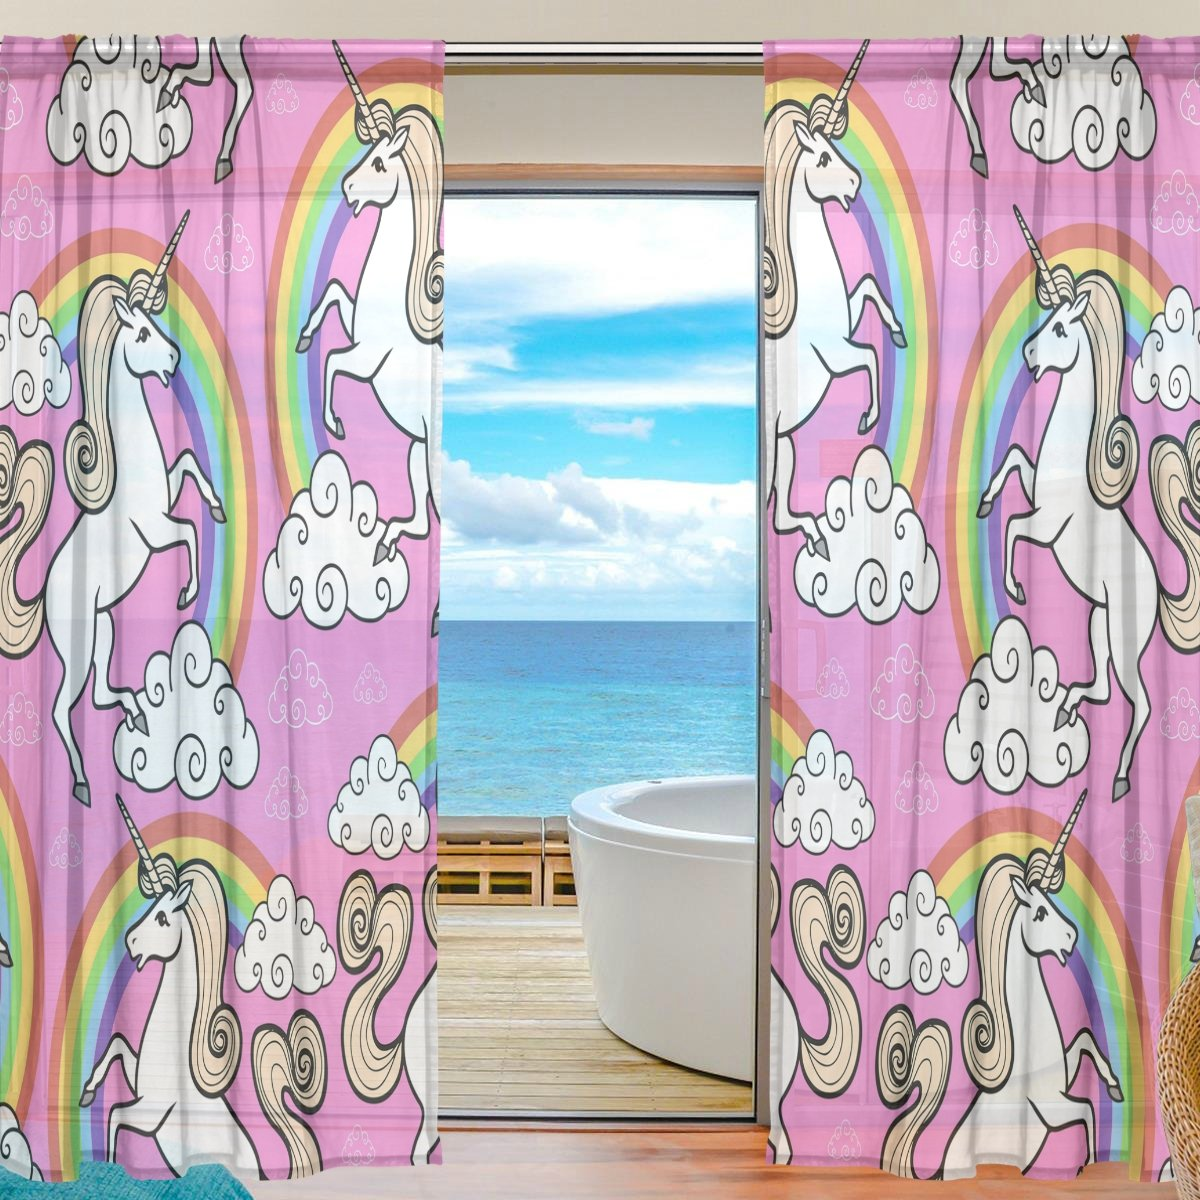 SEULIFE Window Sheer Curtain, Unicorn Animal Rainbow Star Voile Curtain Drapes for Door Kitchen Living Room Bedroom 55x78 inches 2 Panels by SEULIFE